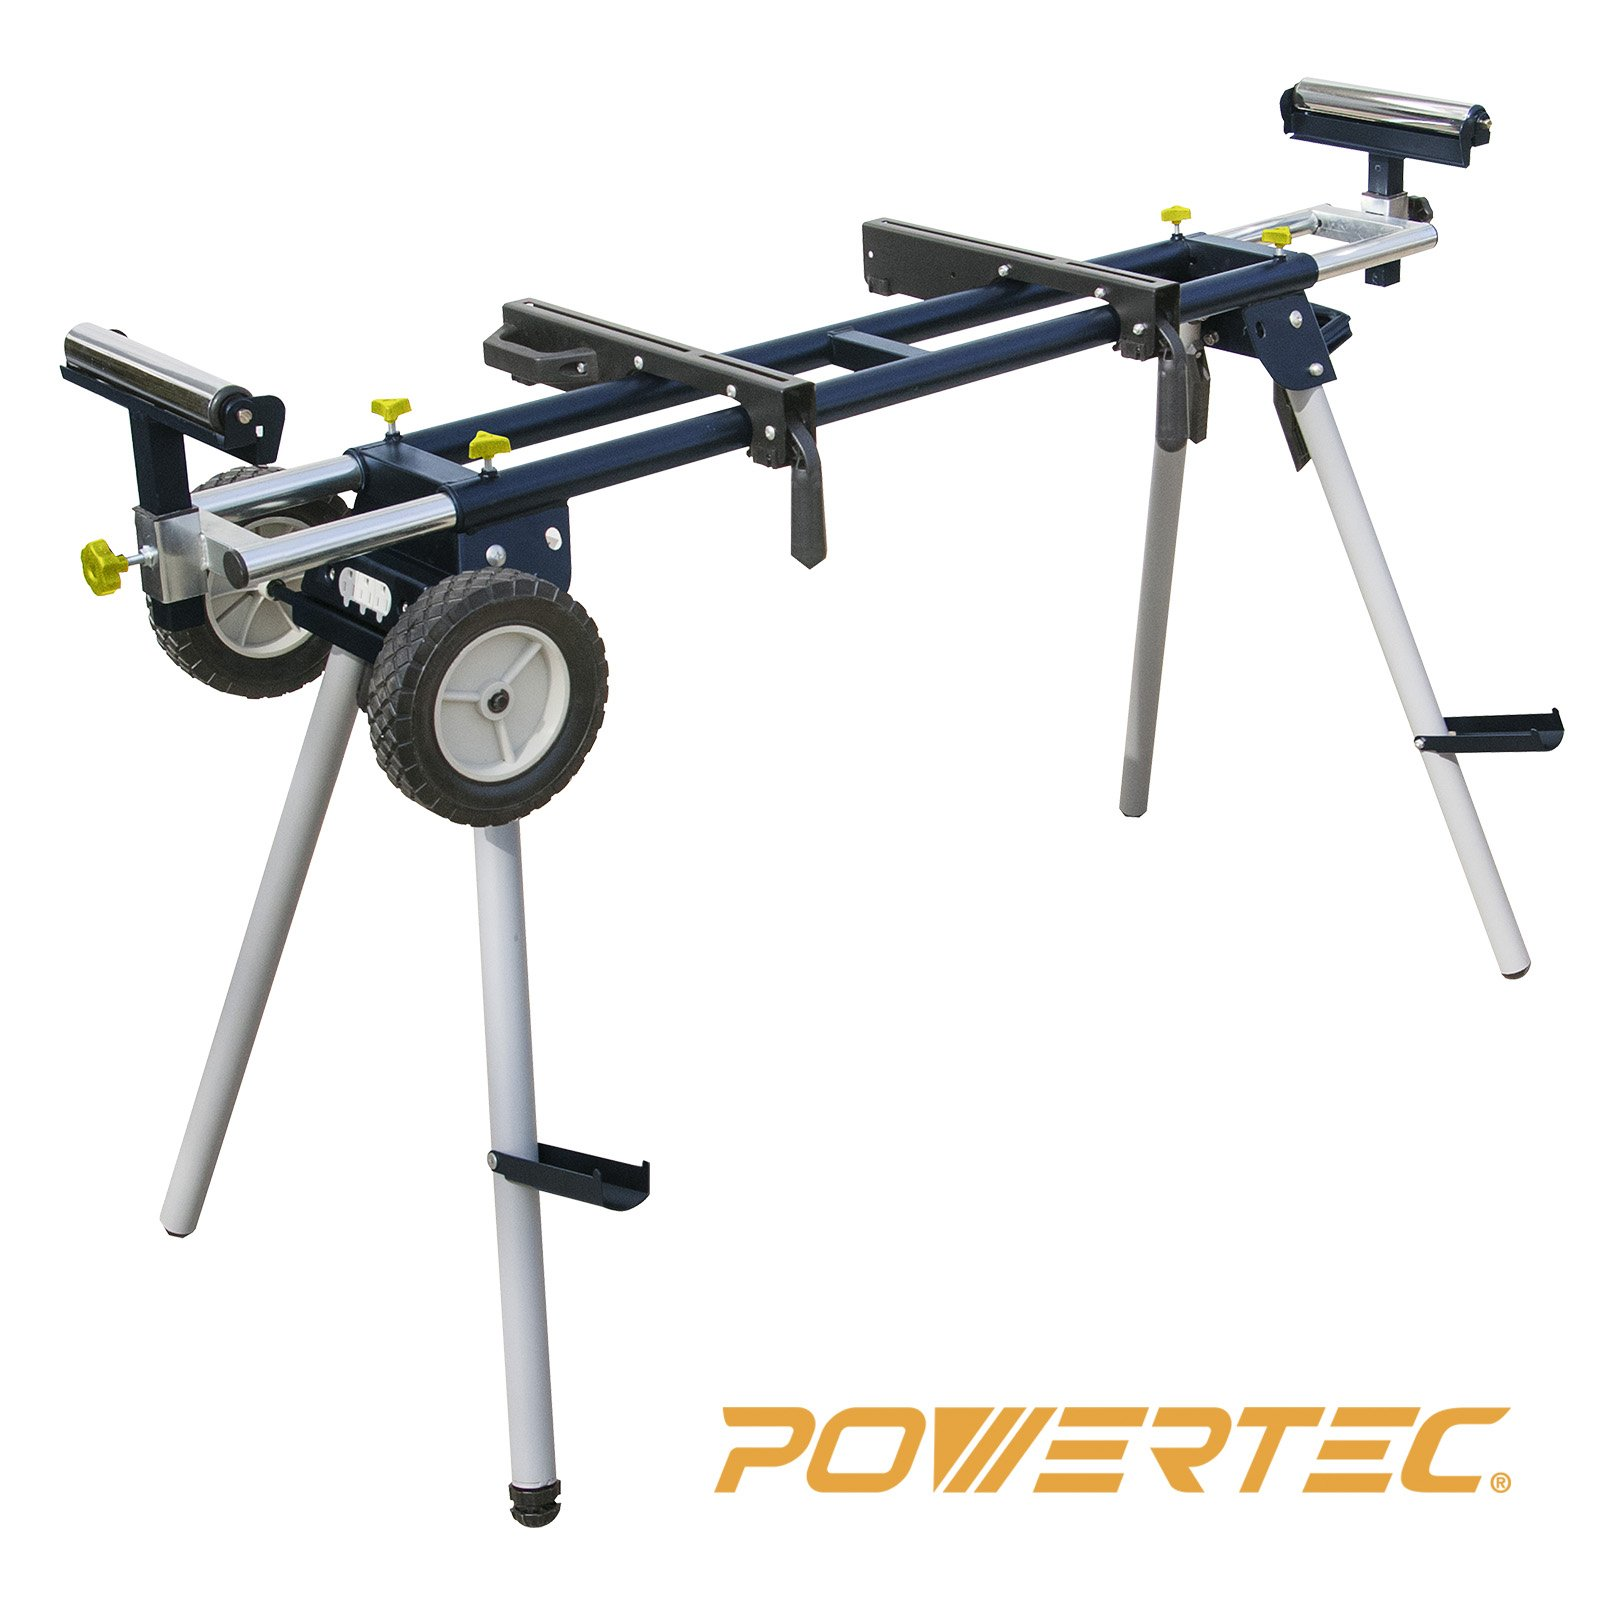 POWERTEC MT4000 Deluxe Miter Saw Stand with Wheels and 110V Power Outlet by POWERTEC